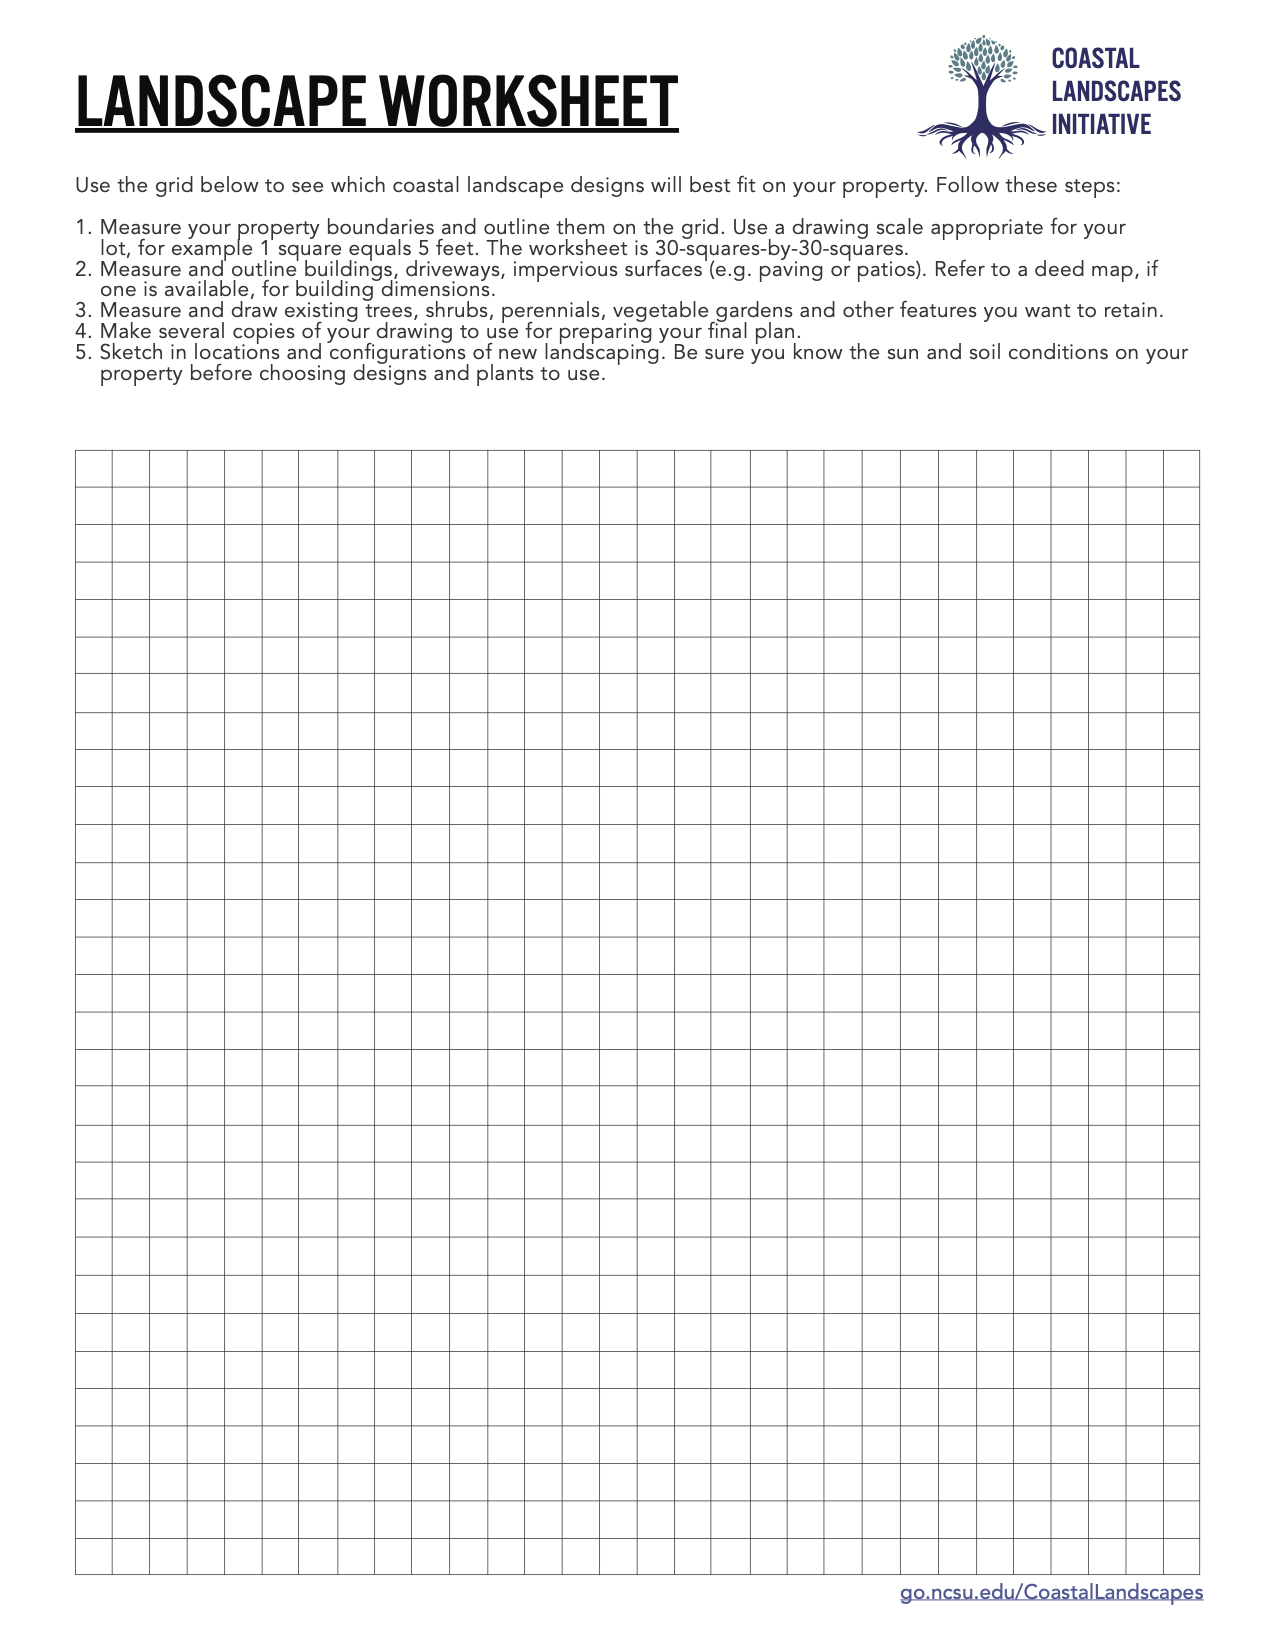 An image of a worksheet with a grid on it for sketching in designs.